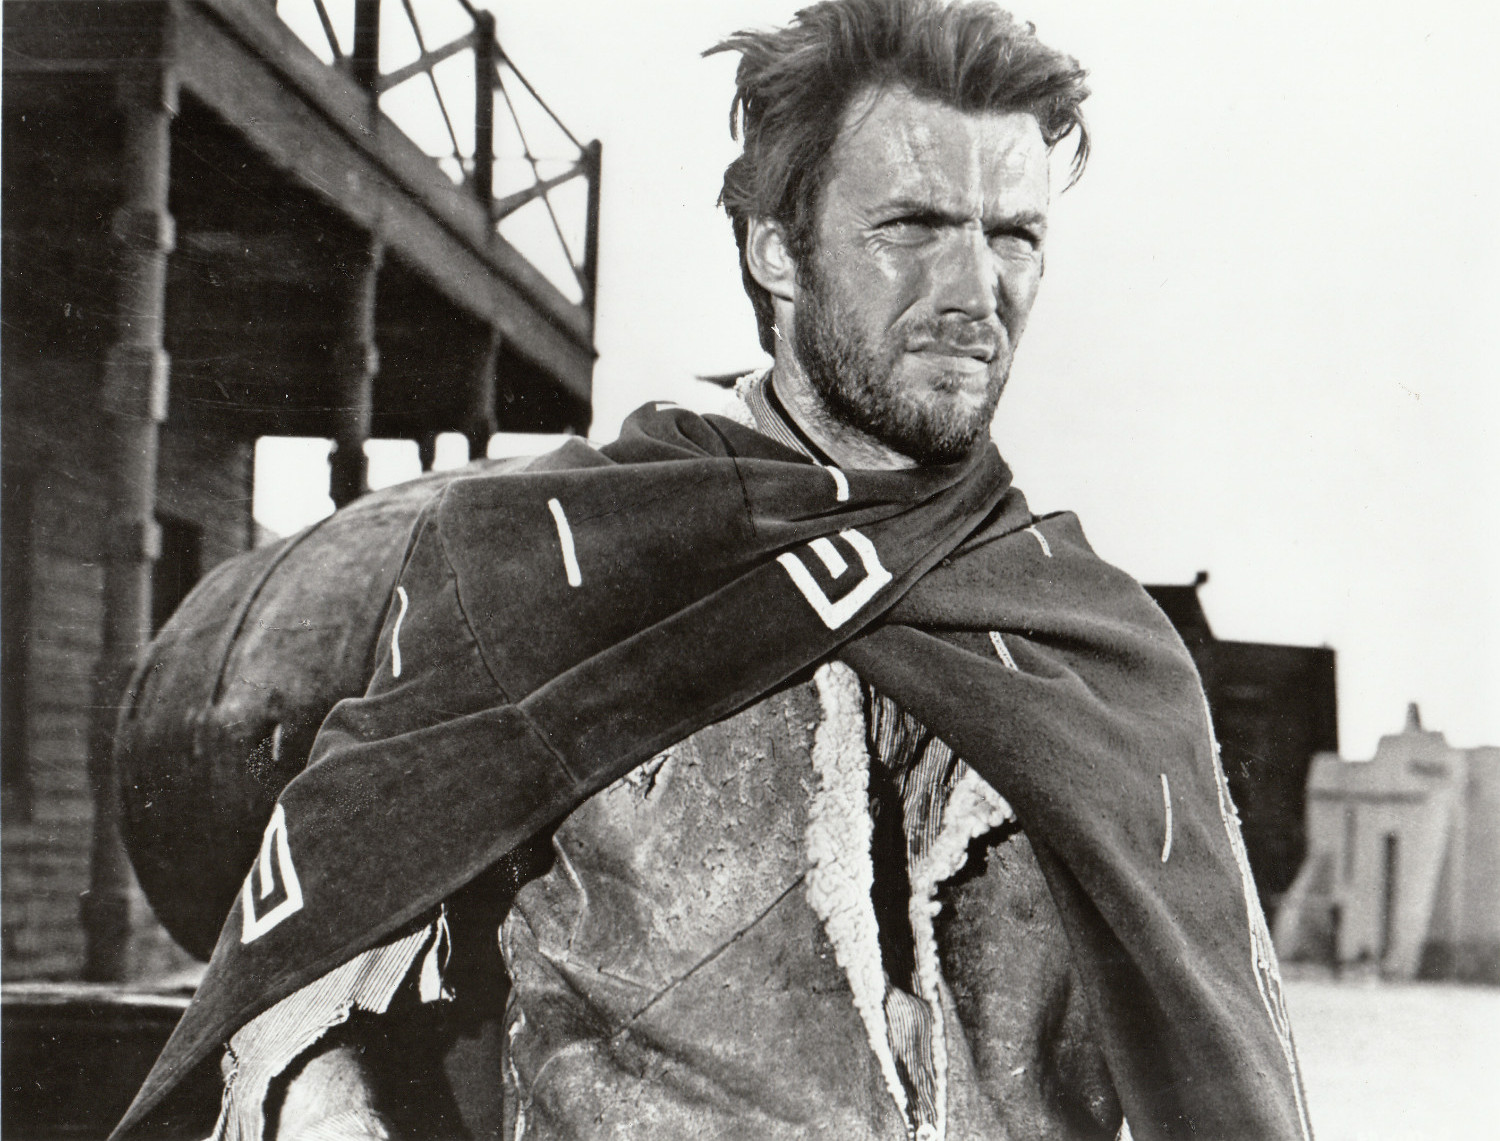 BIRTHDAY MAN: Clint Eastwood as The Man with No Name in A Fistful of Dollars (1964).